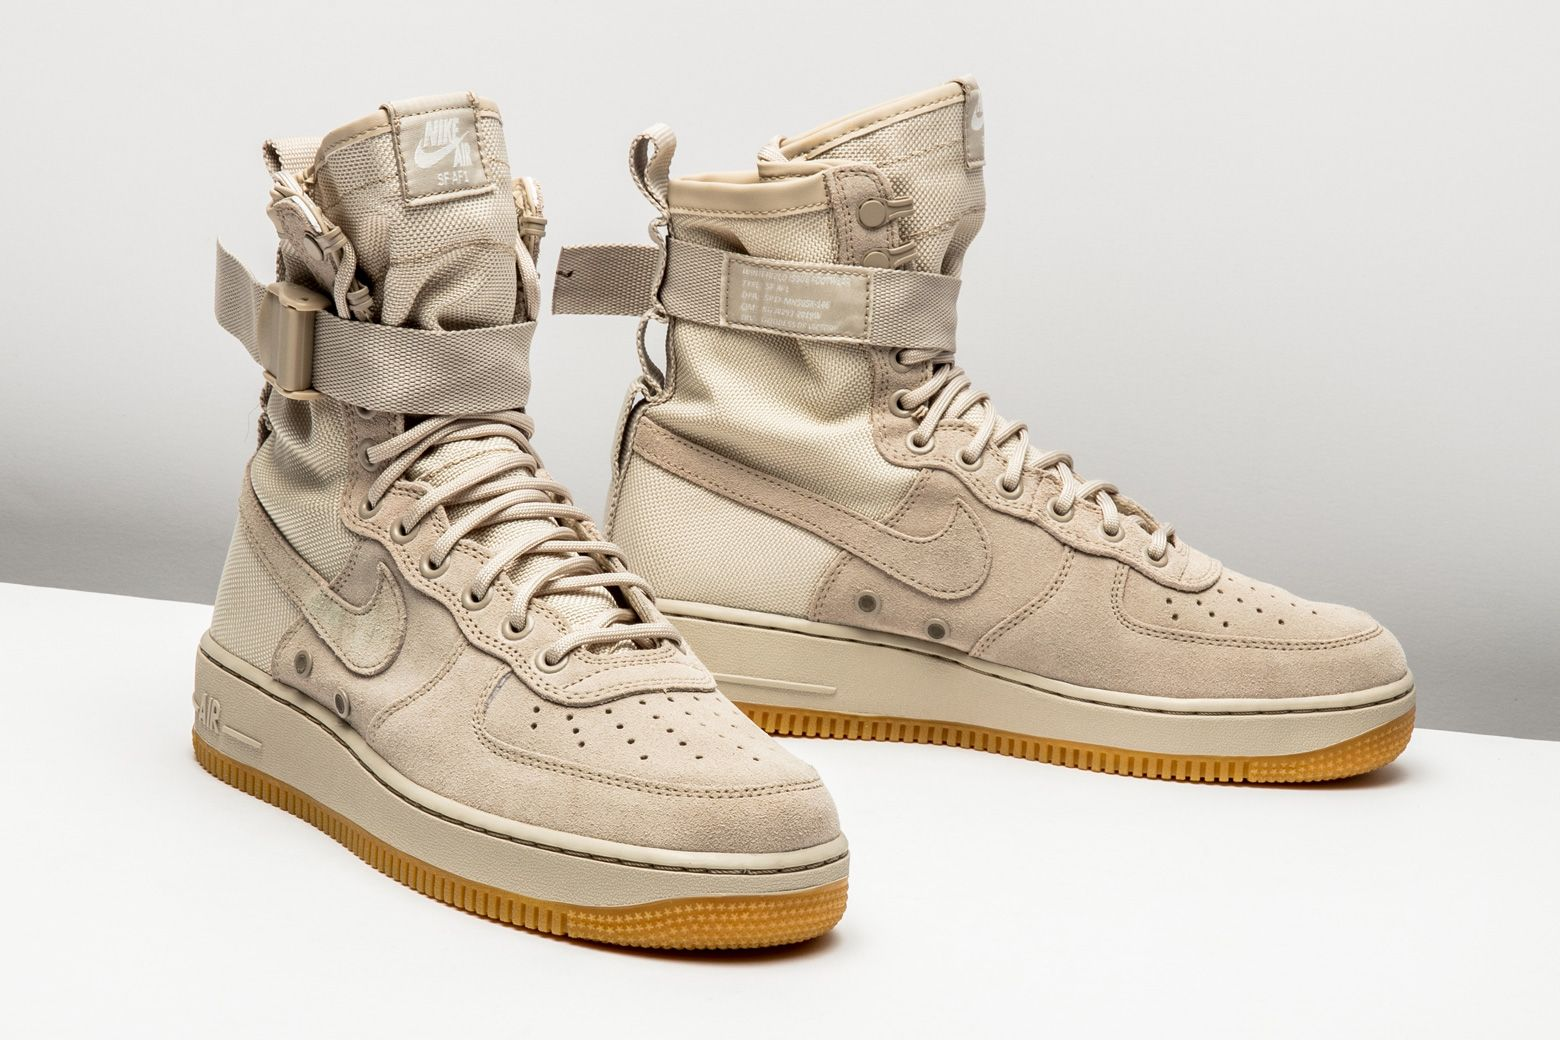 Crisp and clean, the militaryinspired Nike SFAir Force 1